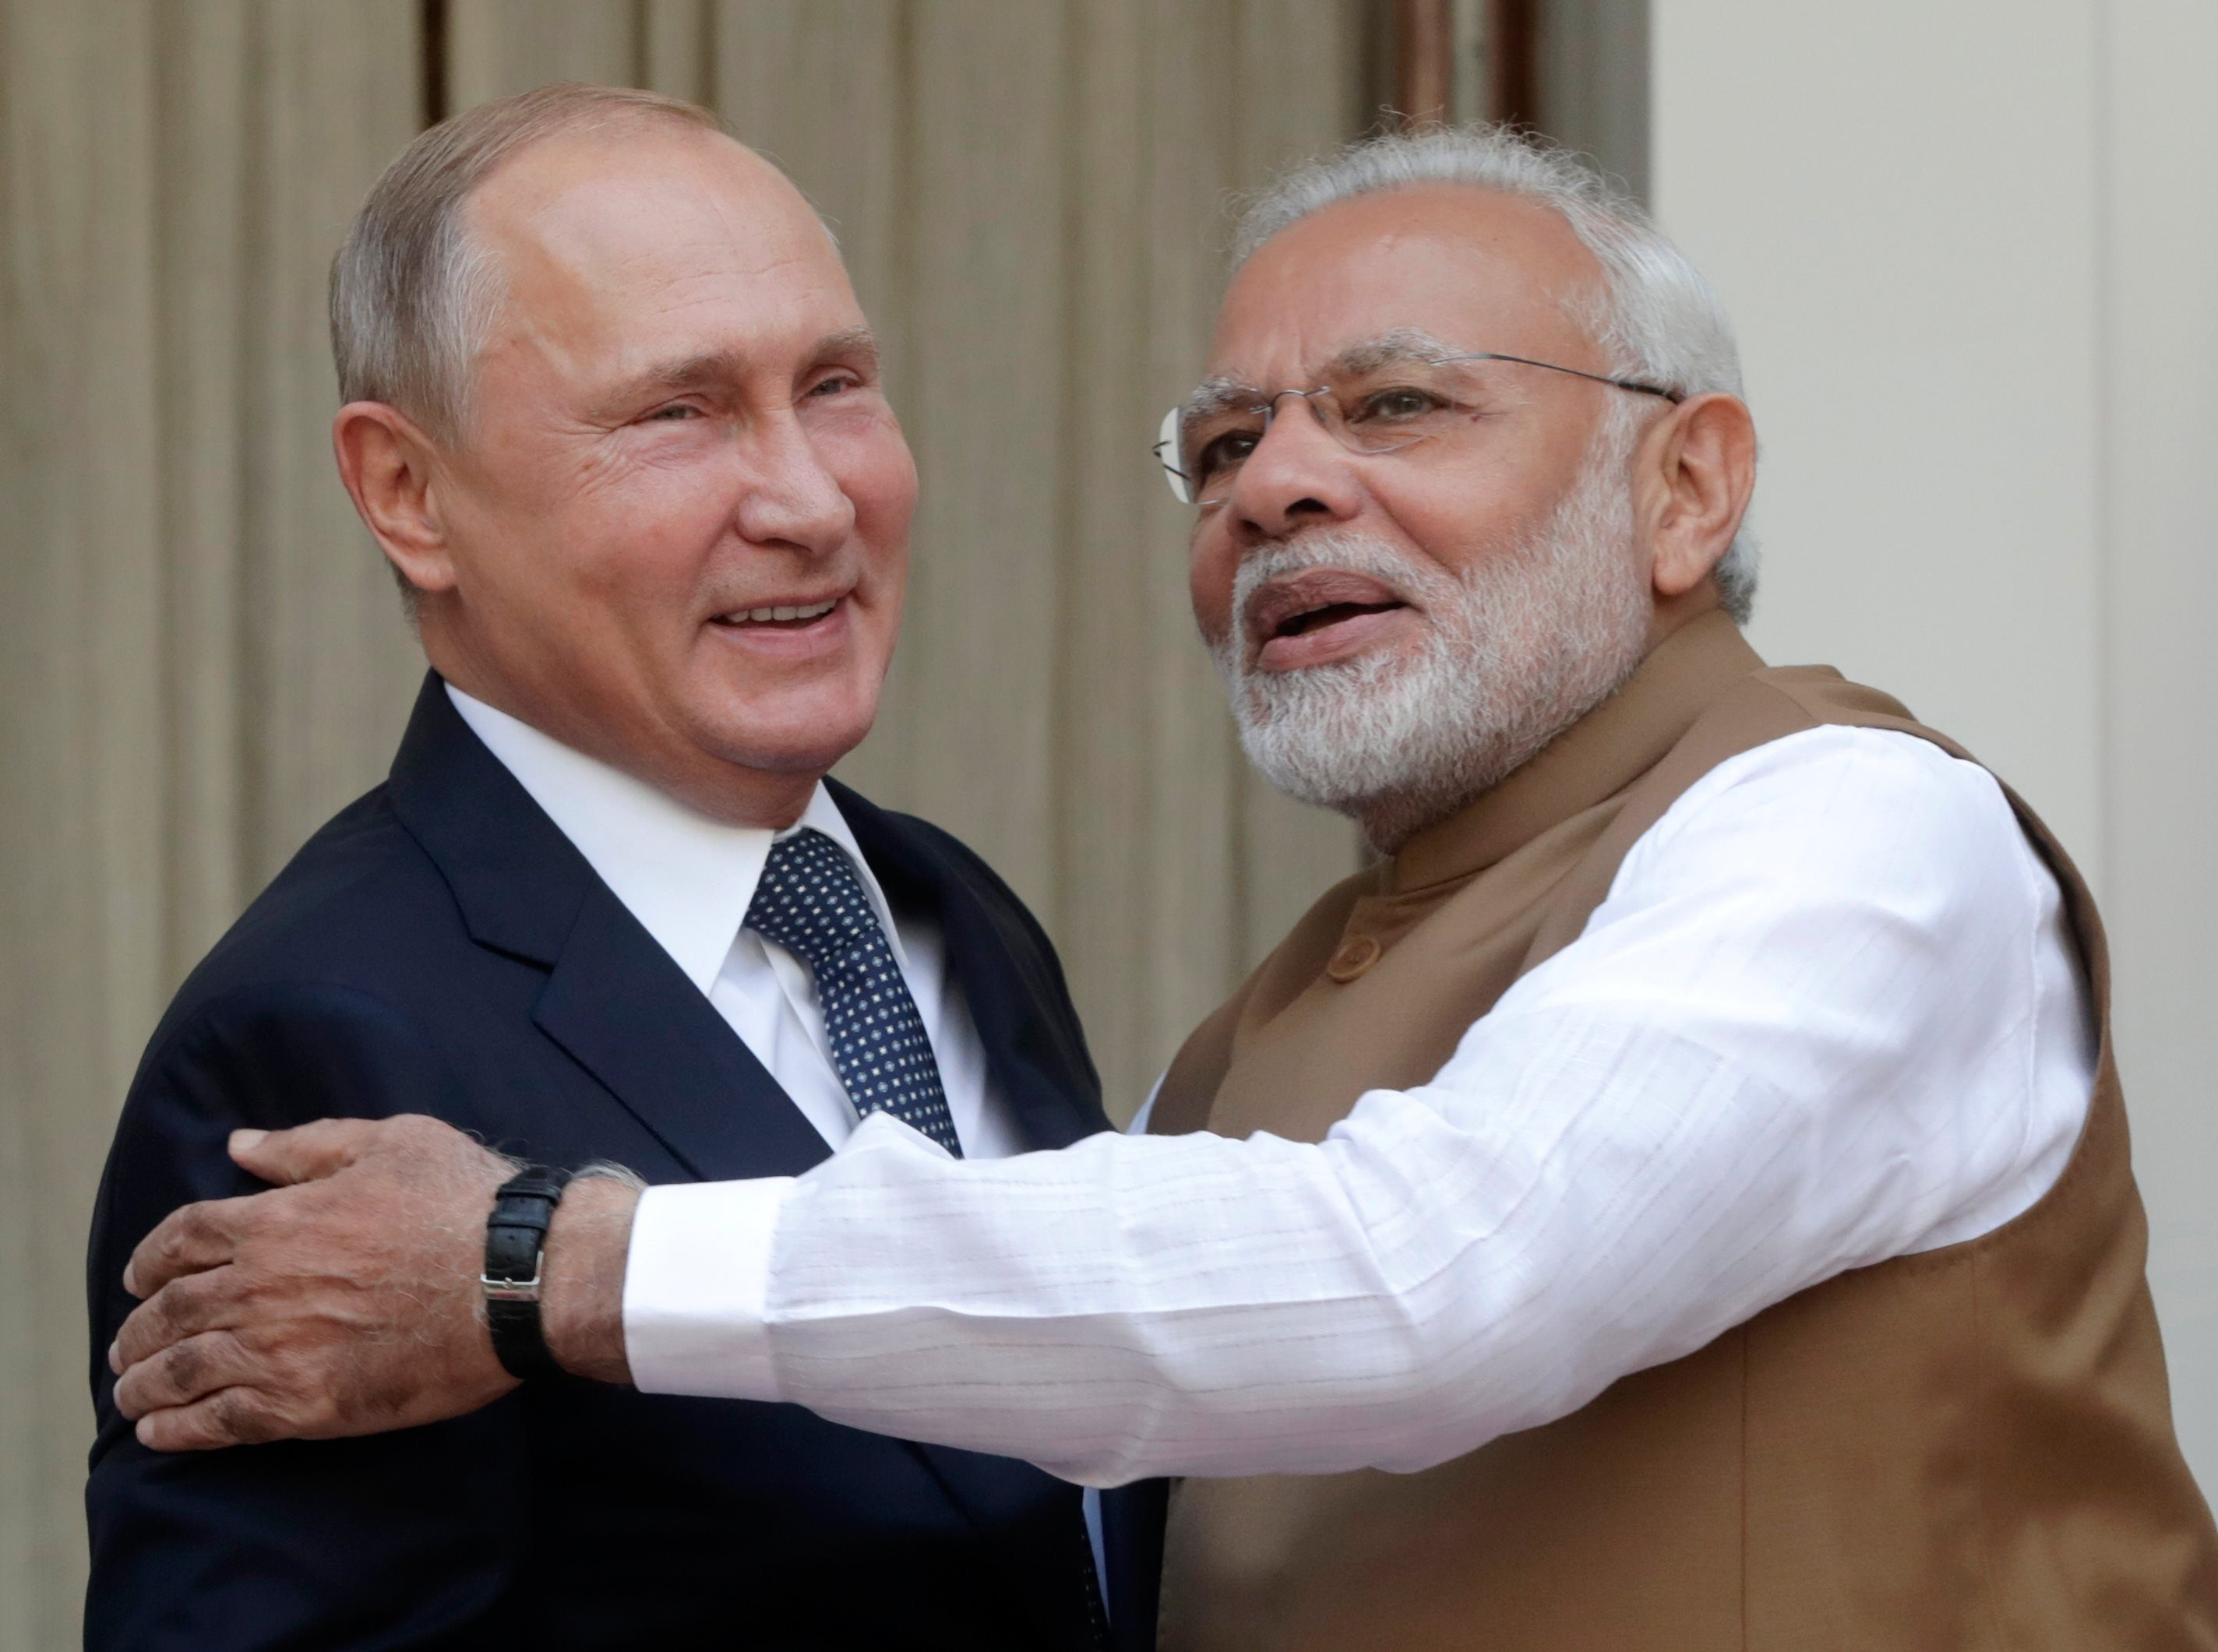 Russian President Vladimir Putin (L) and Indian Prime Minister Narendra Modi (R) meet at Hyderabad House in New Delhi, India, 05 October 2018